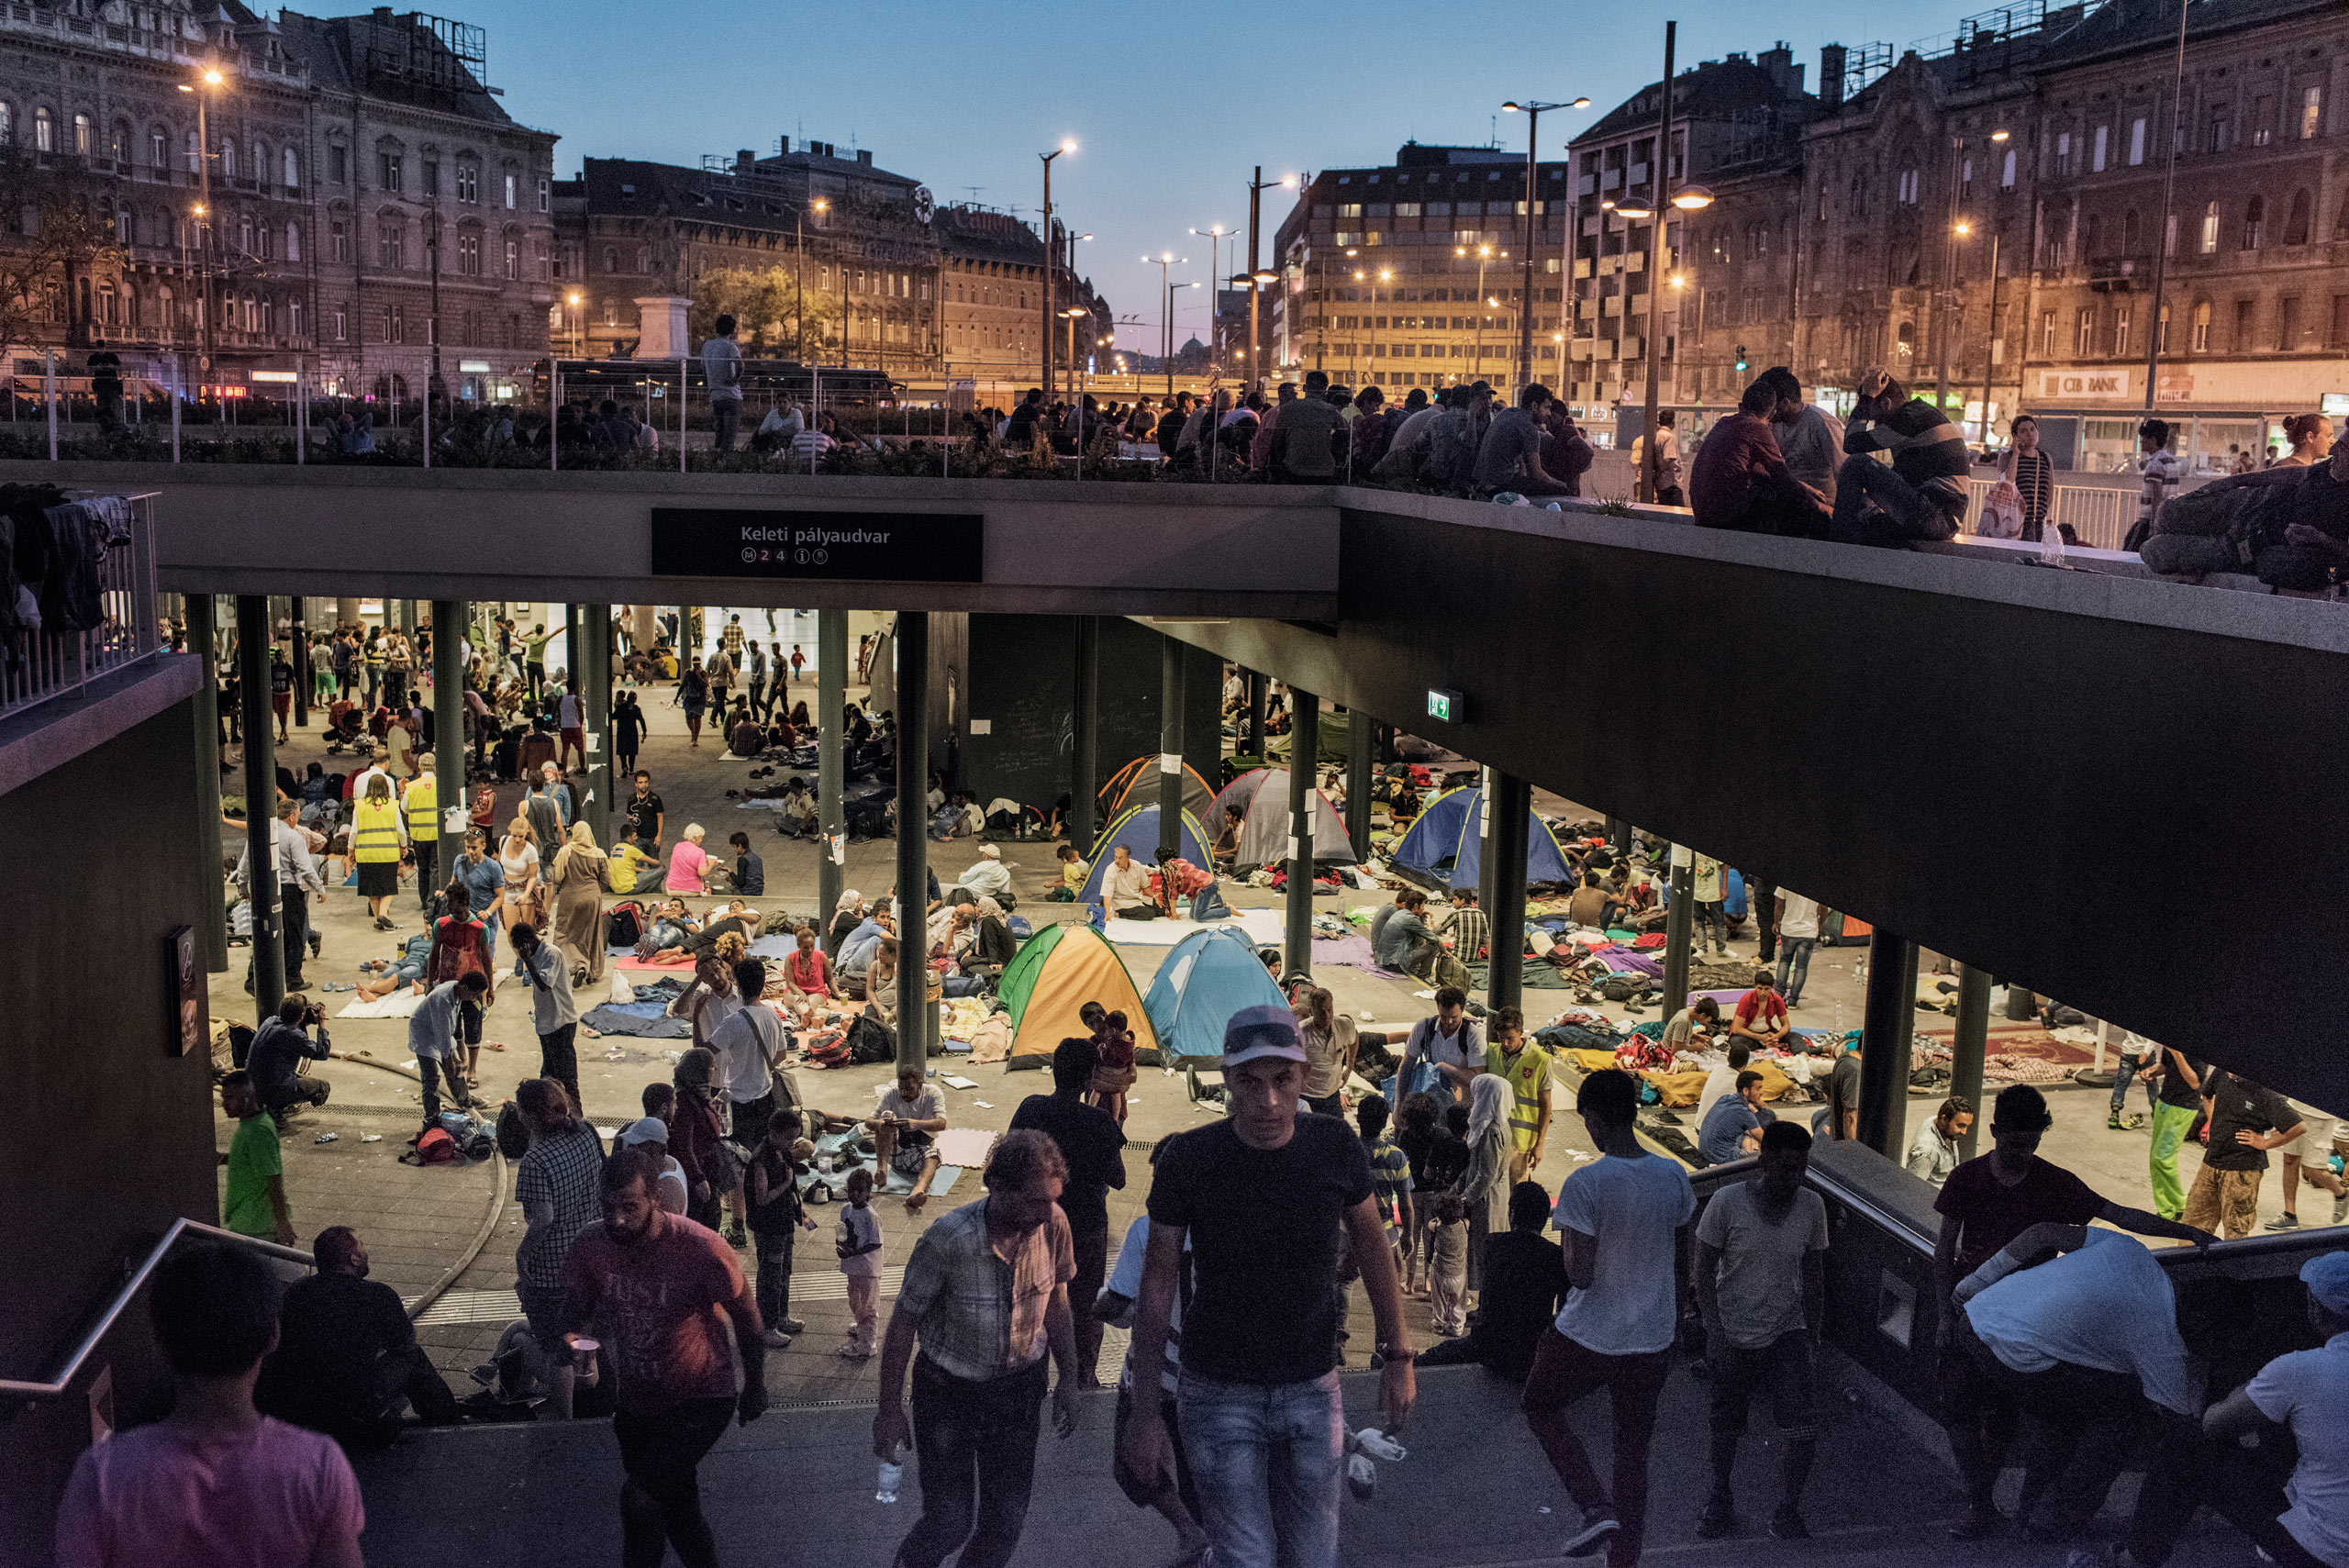 Thousands of migrants stranded at the Keleti train station in Budapest, Hungary, blocked from traveling to Austria, Germany and destinations in northern Europe where they hope to seek asylum.  Sept. 2, 2015.